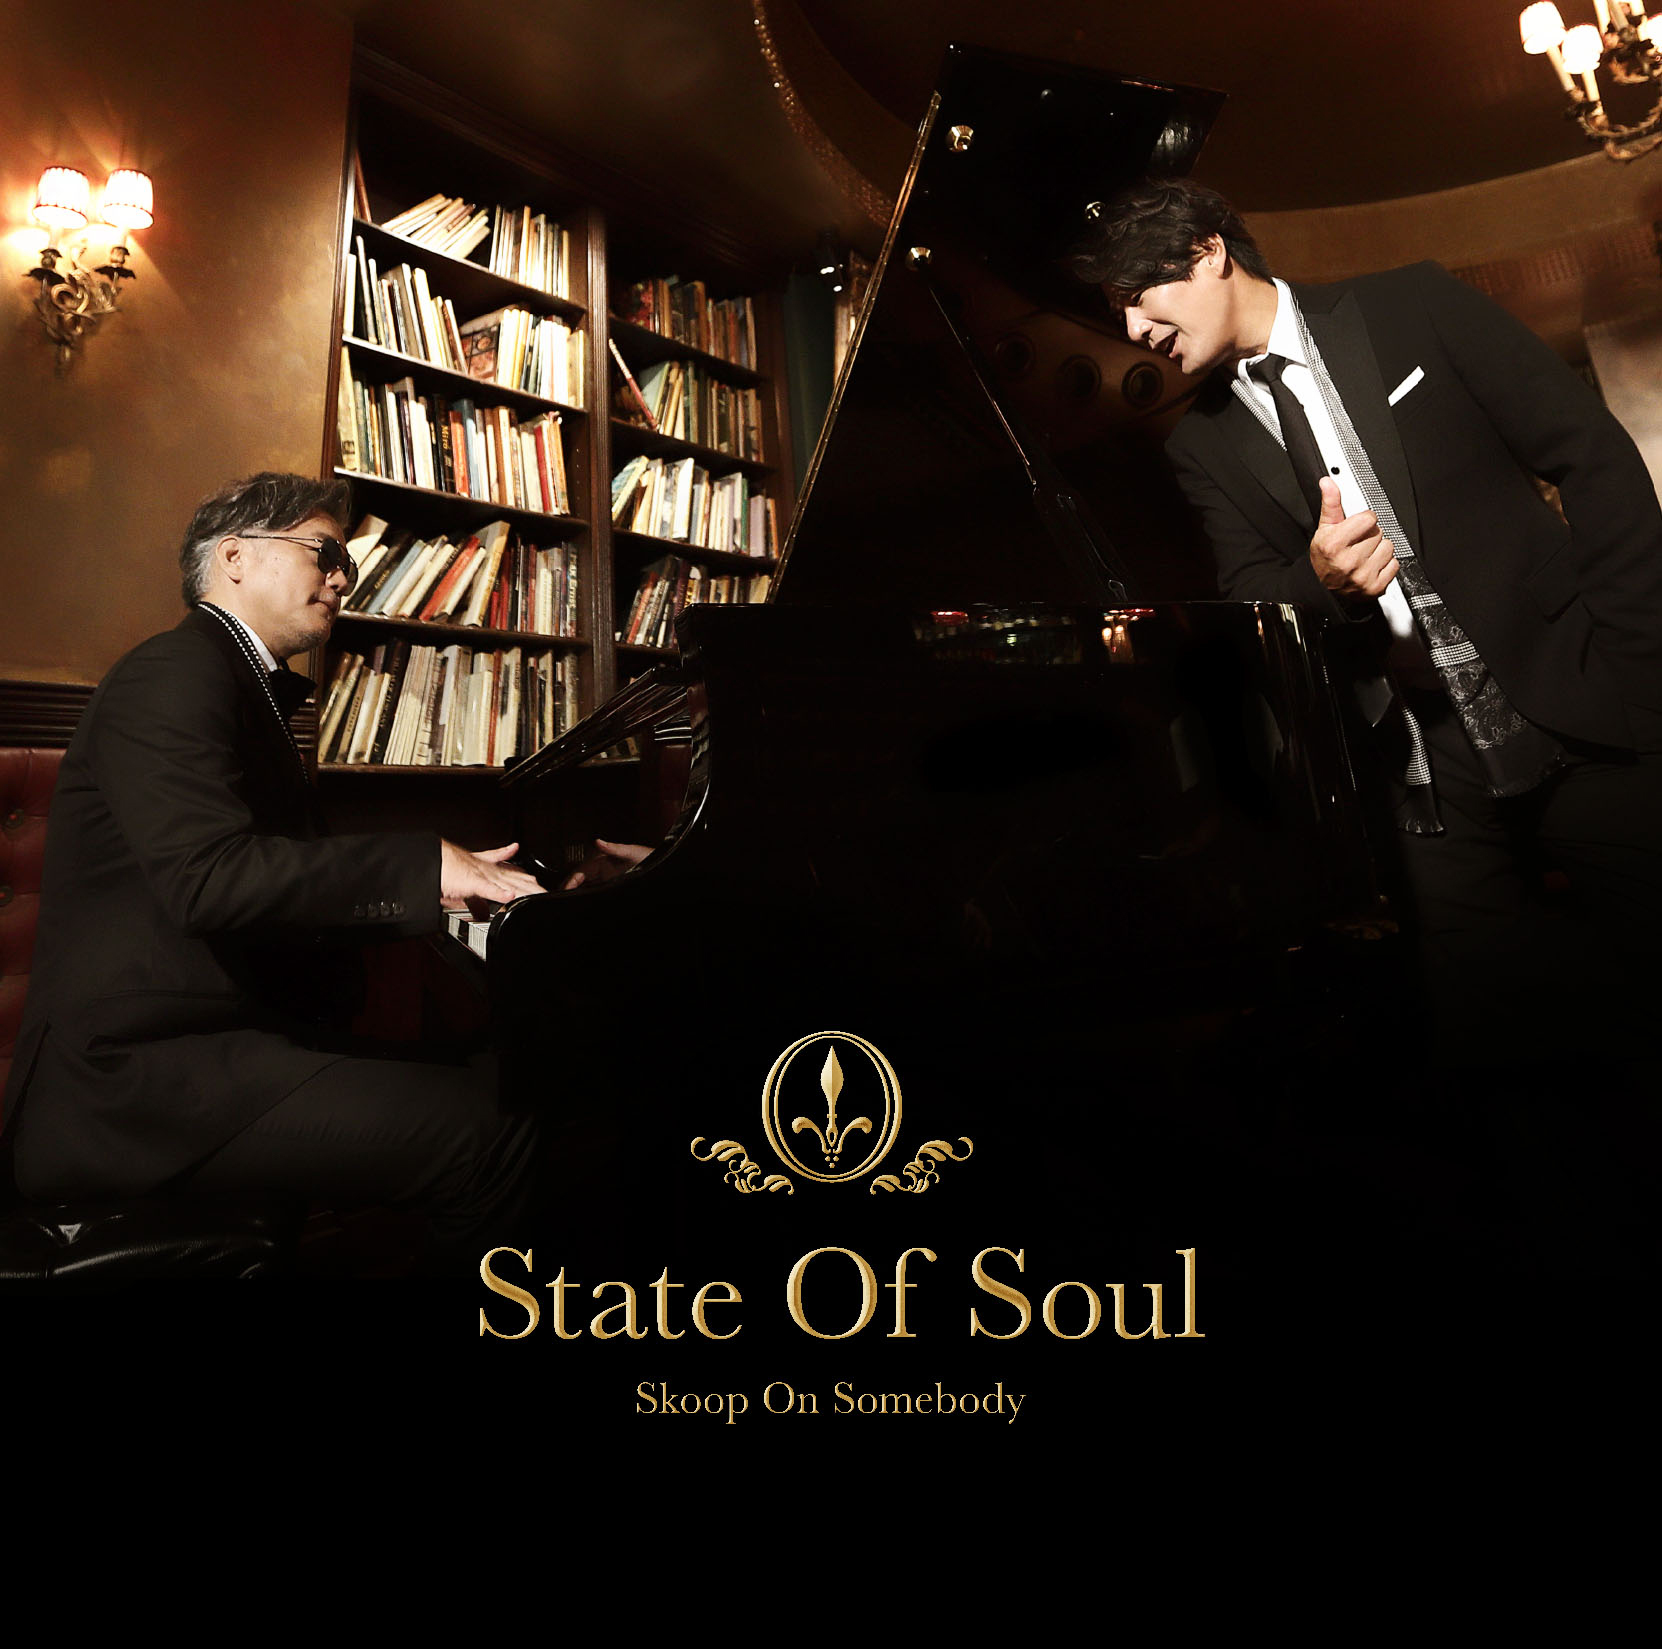 「State Of Soul」通常盤